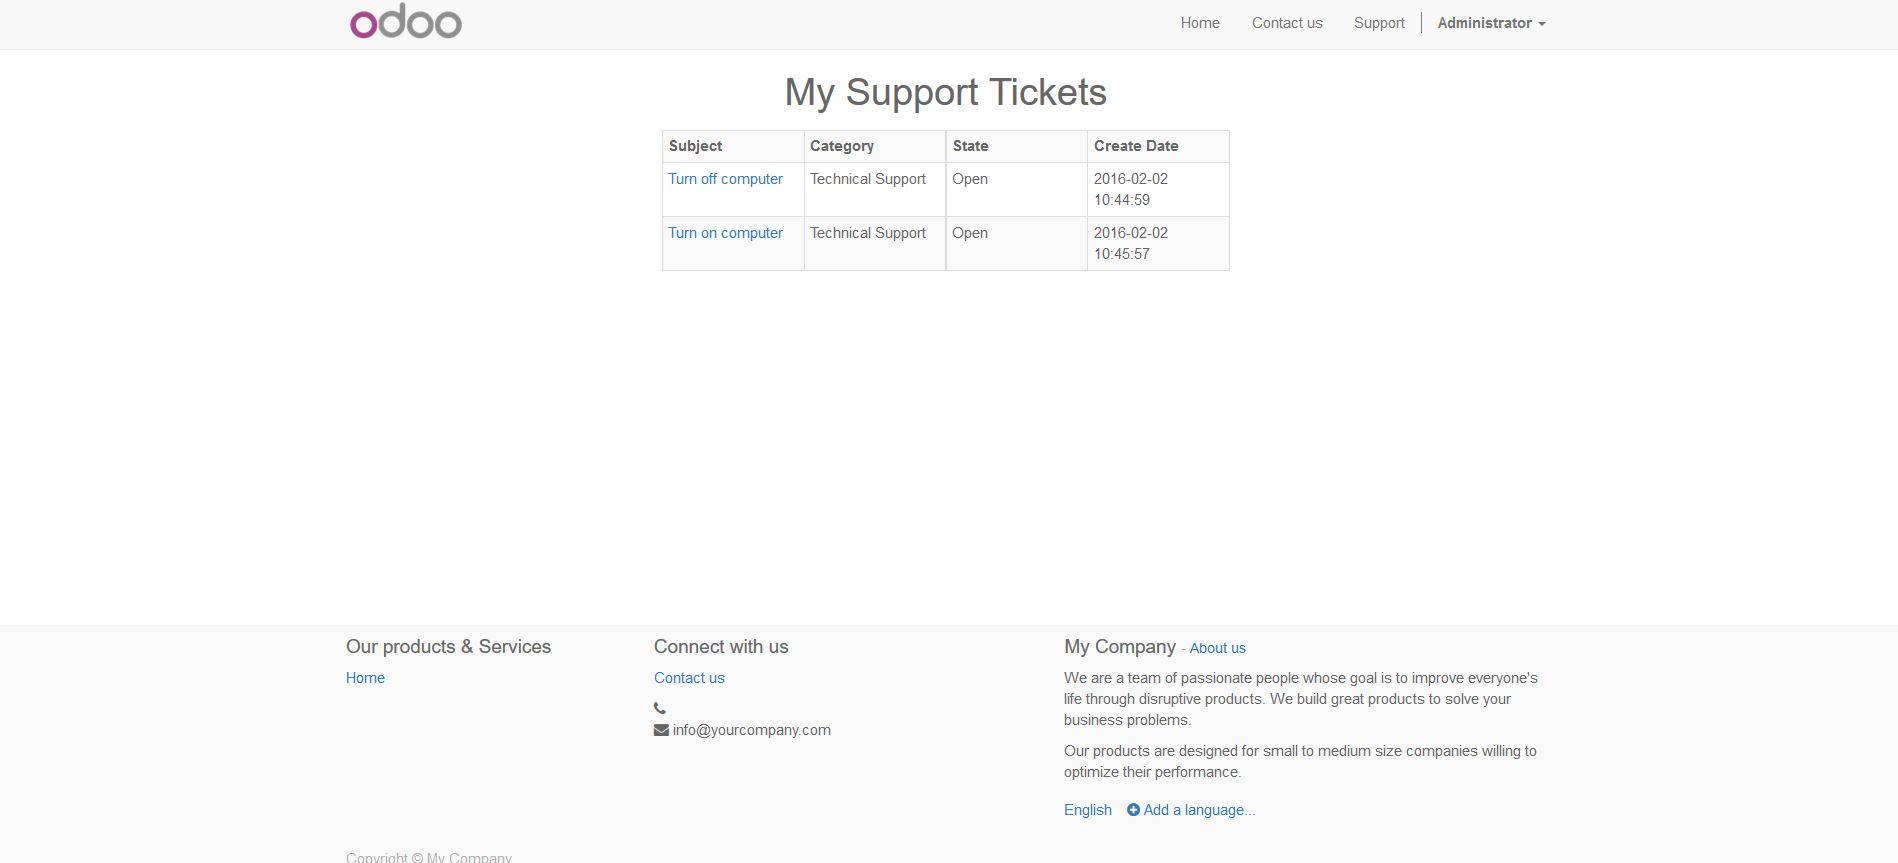 View Support Tickets Online